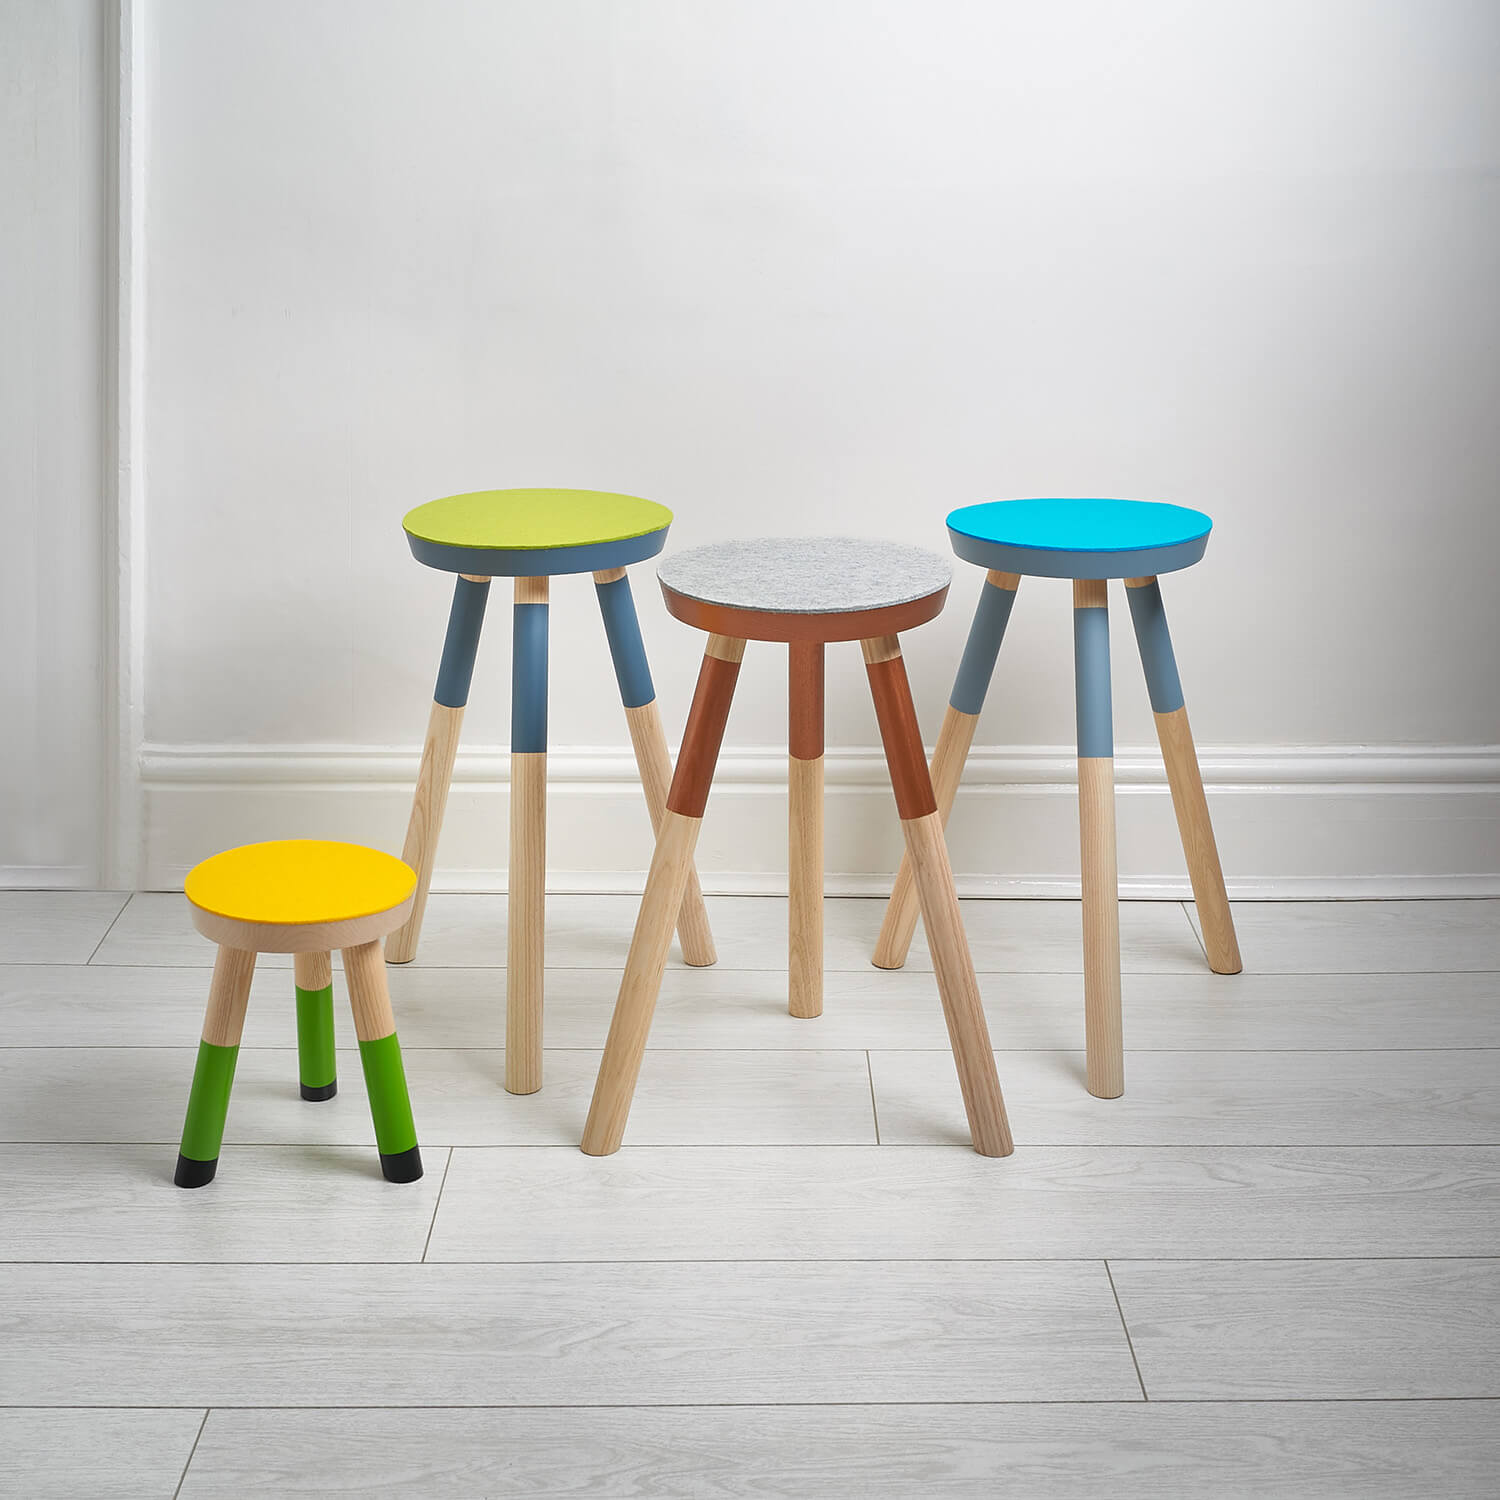 Studio product photograph of handmade vividly painted stools